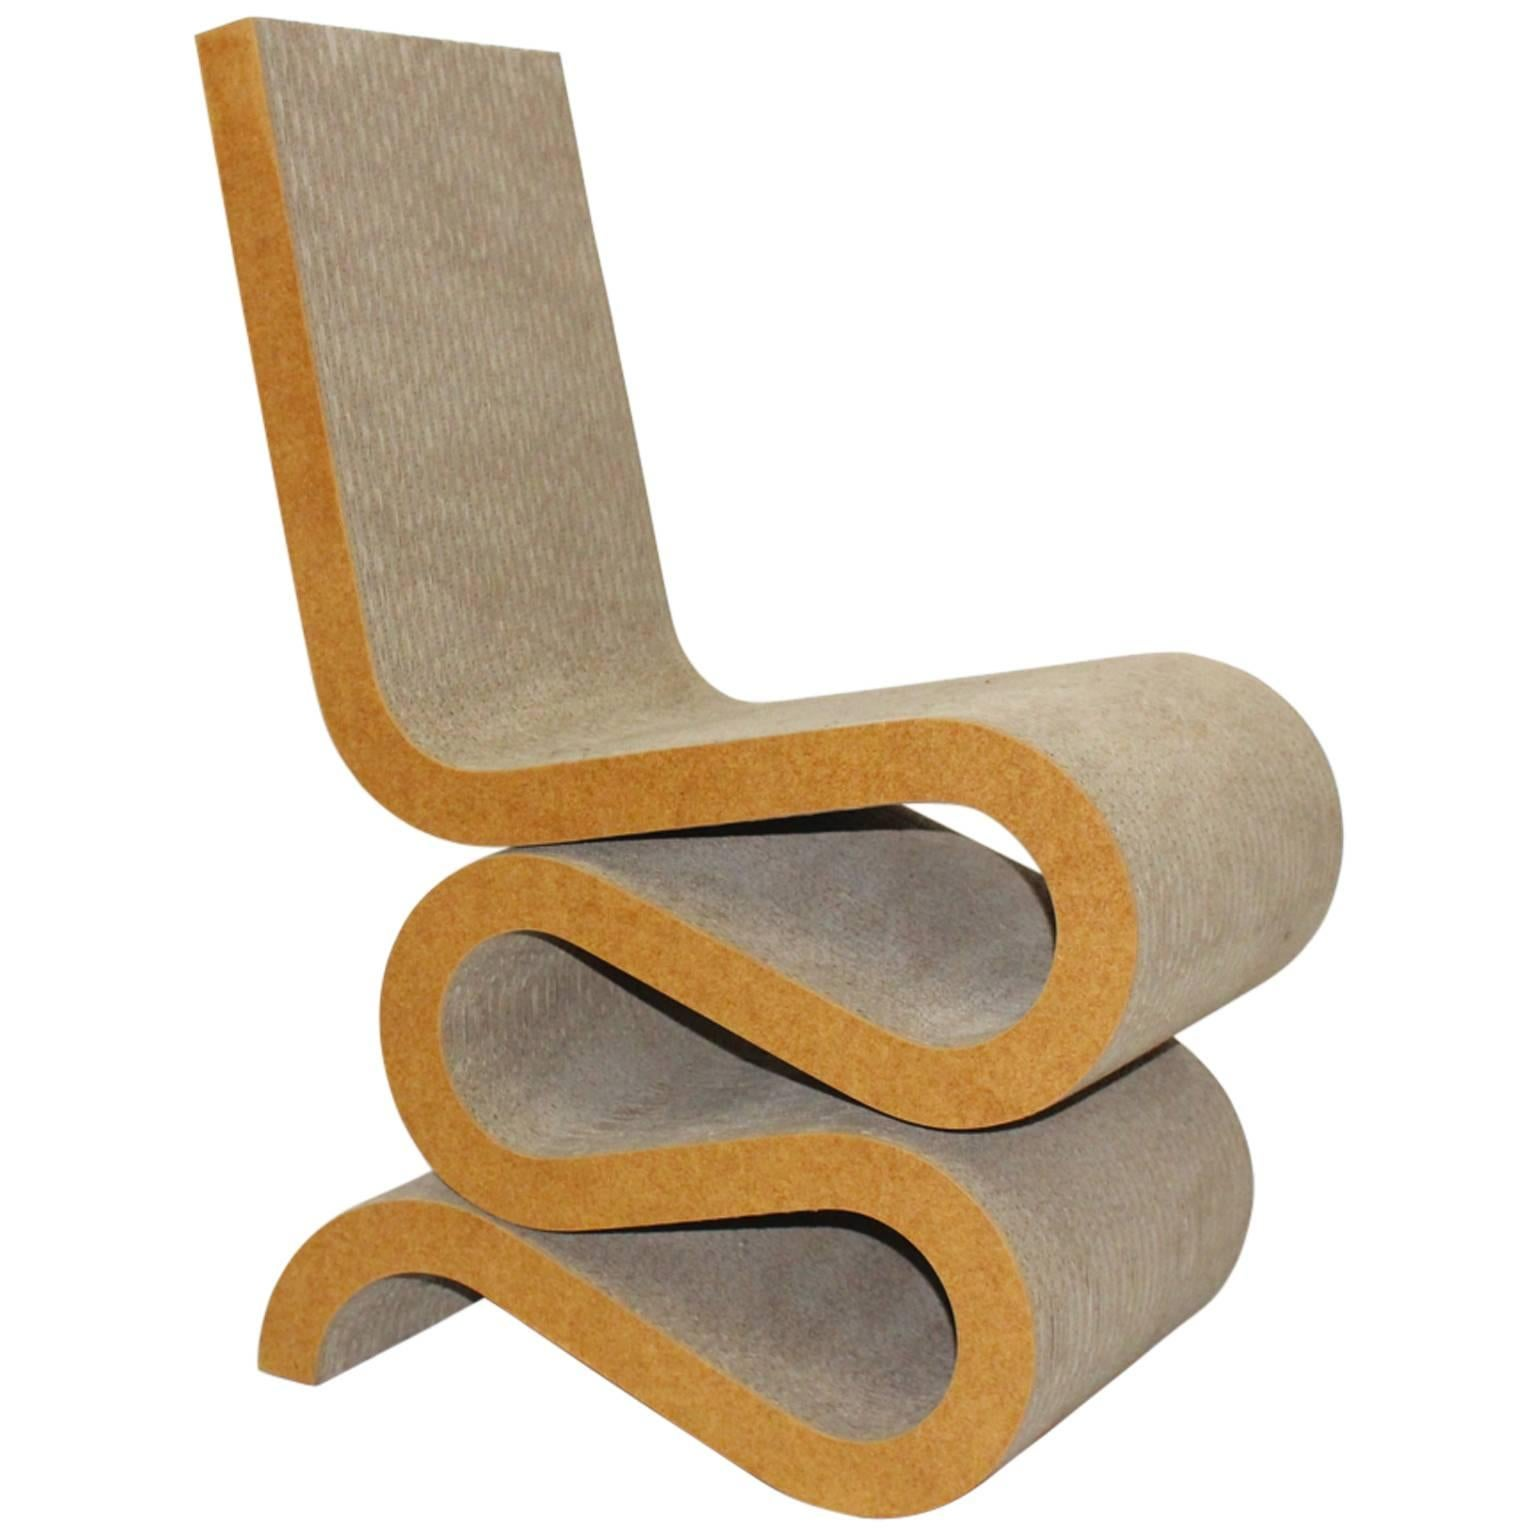 Mid Century Modern Vintage Cardboard Wiggle Side Chair by Frank O. Gehry, 1972